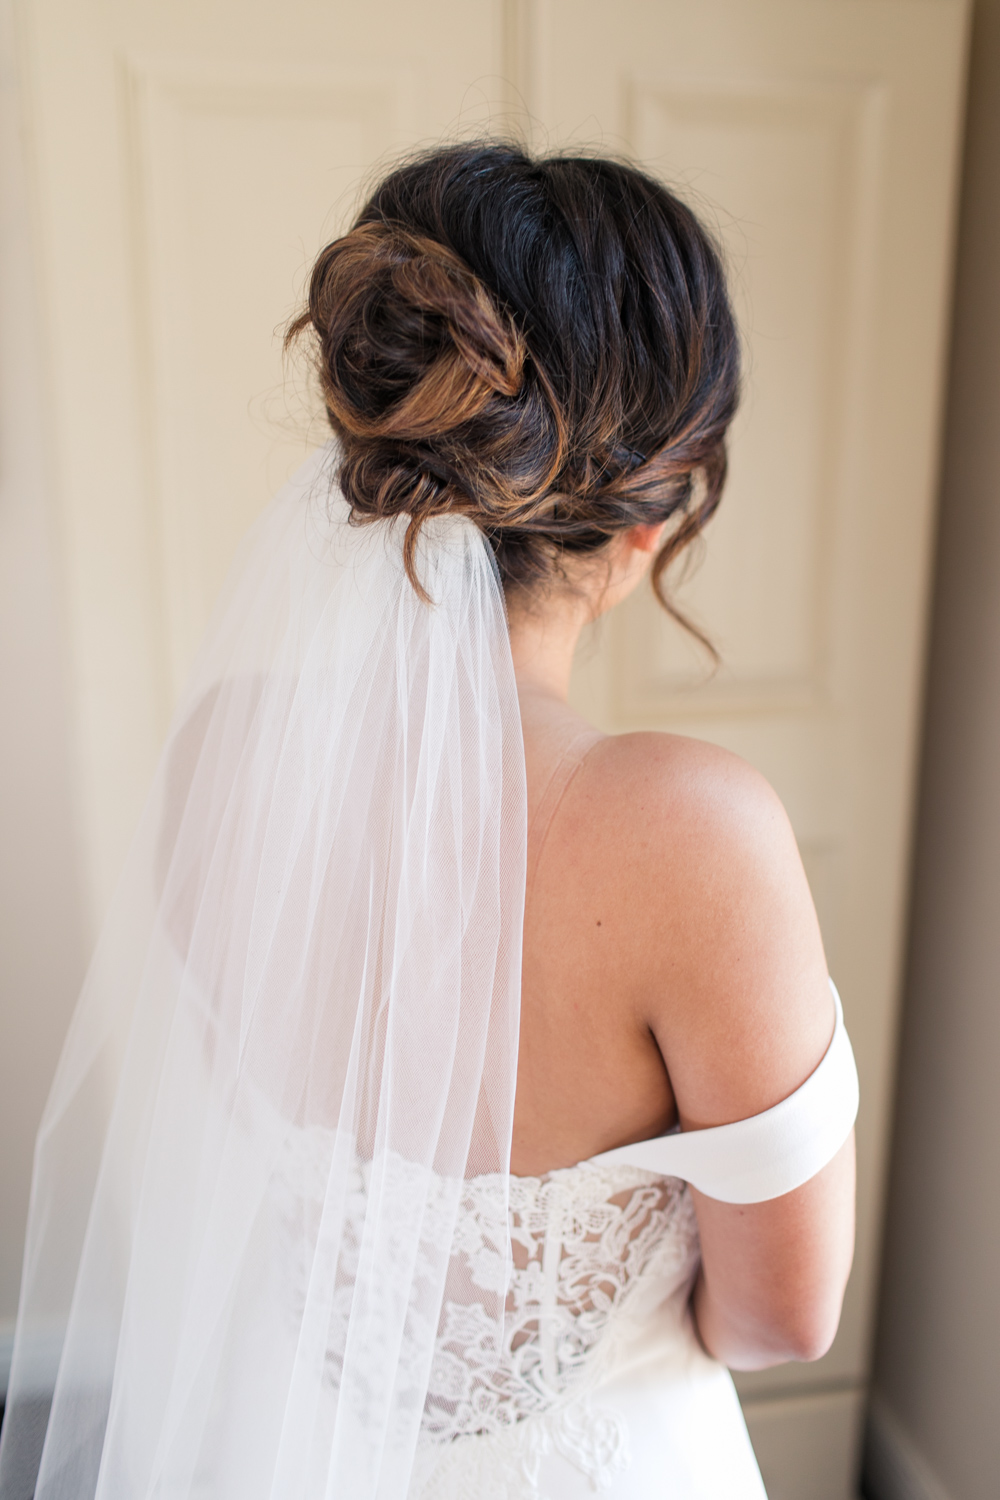 the back of the bride's dress featuring a hairdo in a bun with a veil attached to it